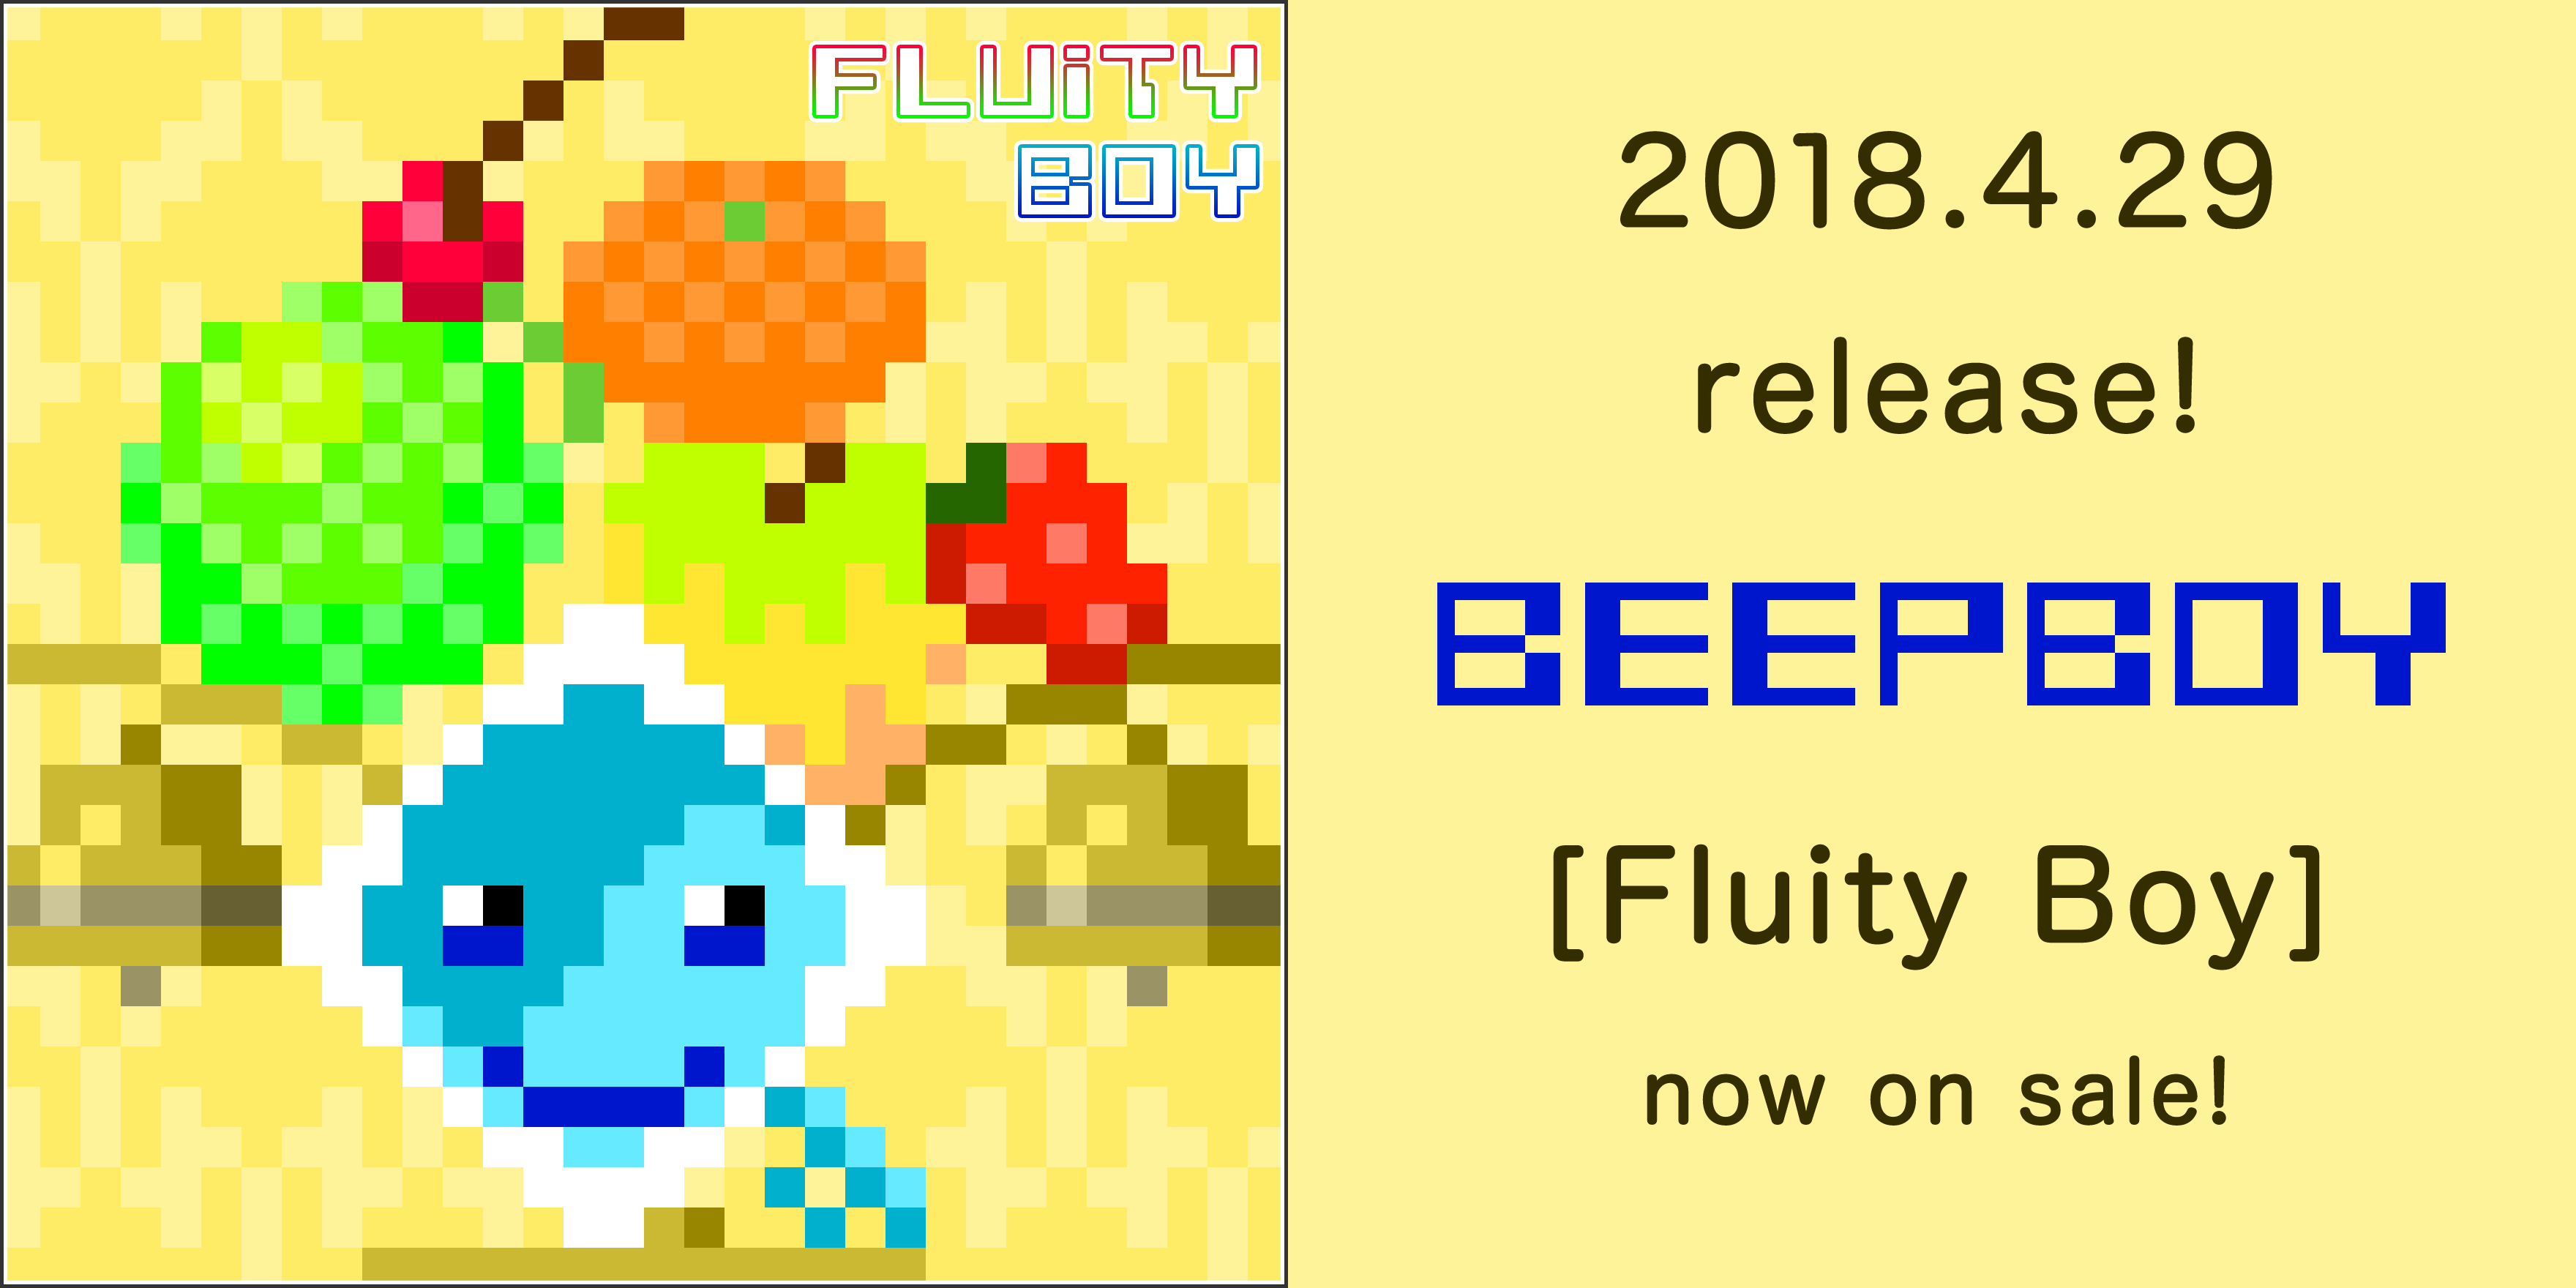 Fruity Boy / BEEPBOY 2018.4.29 release!